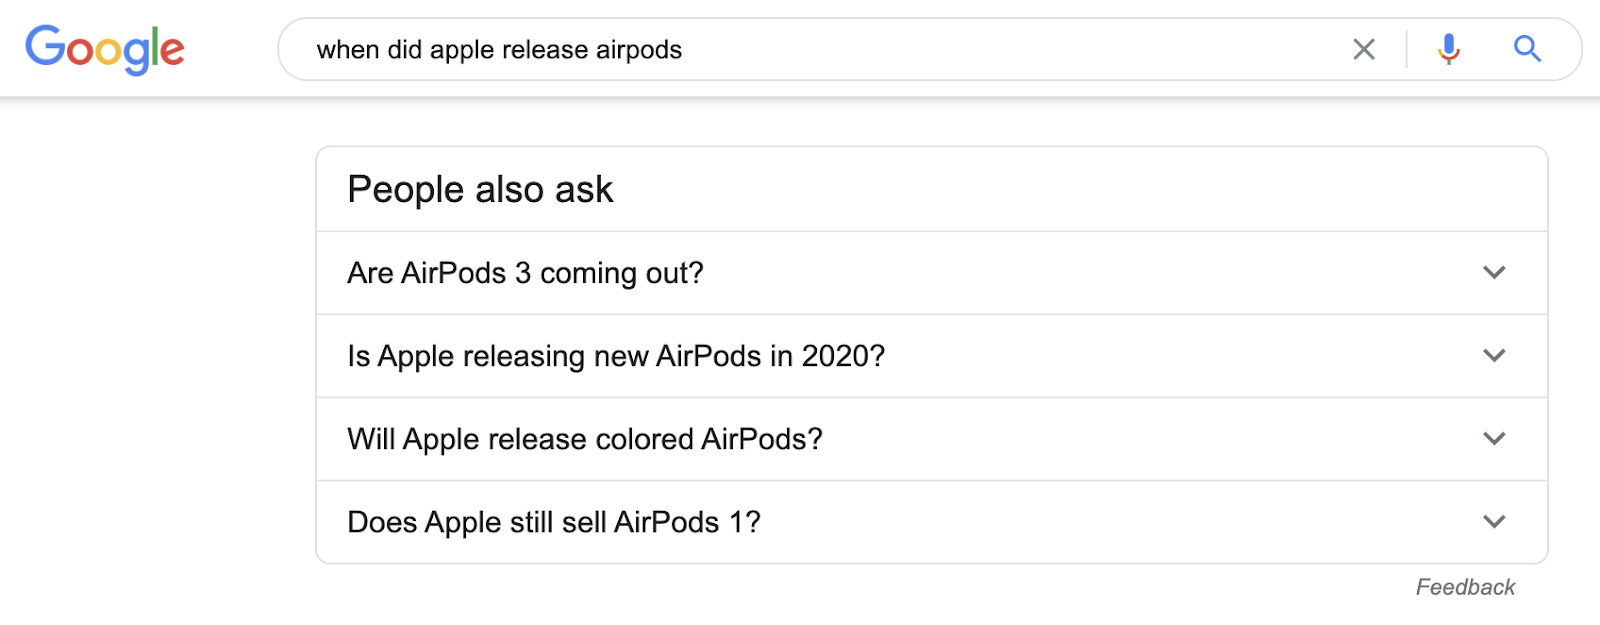 25 when did apple release airpods paa